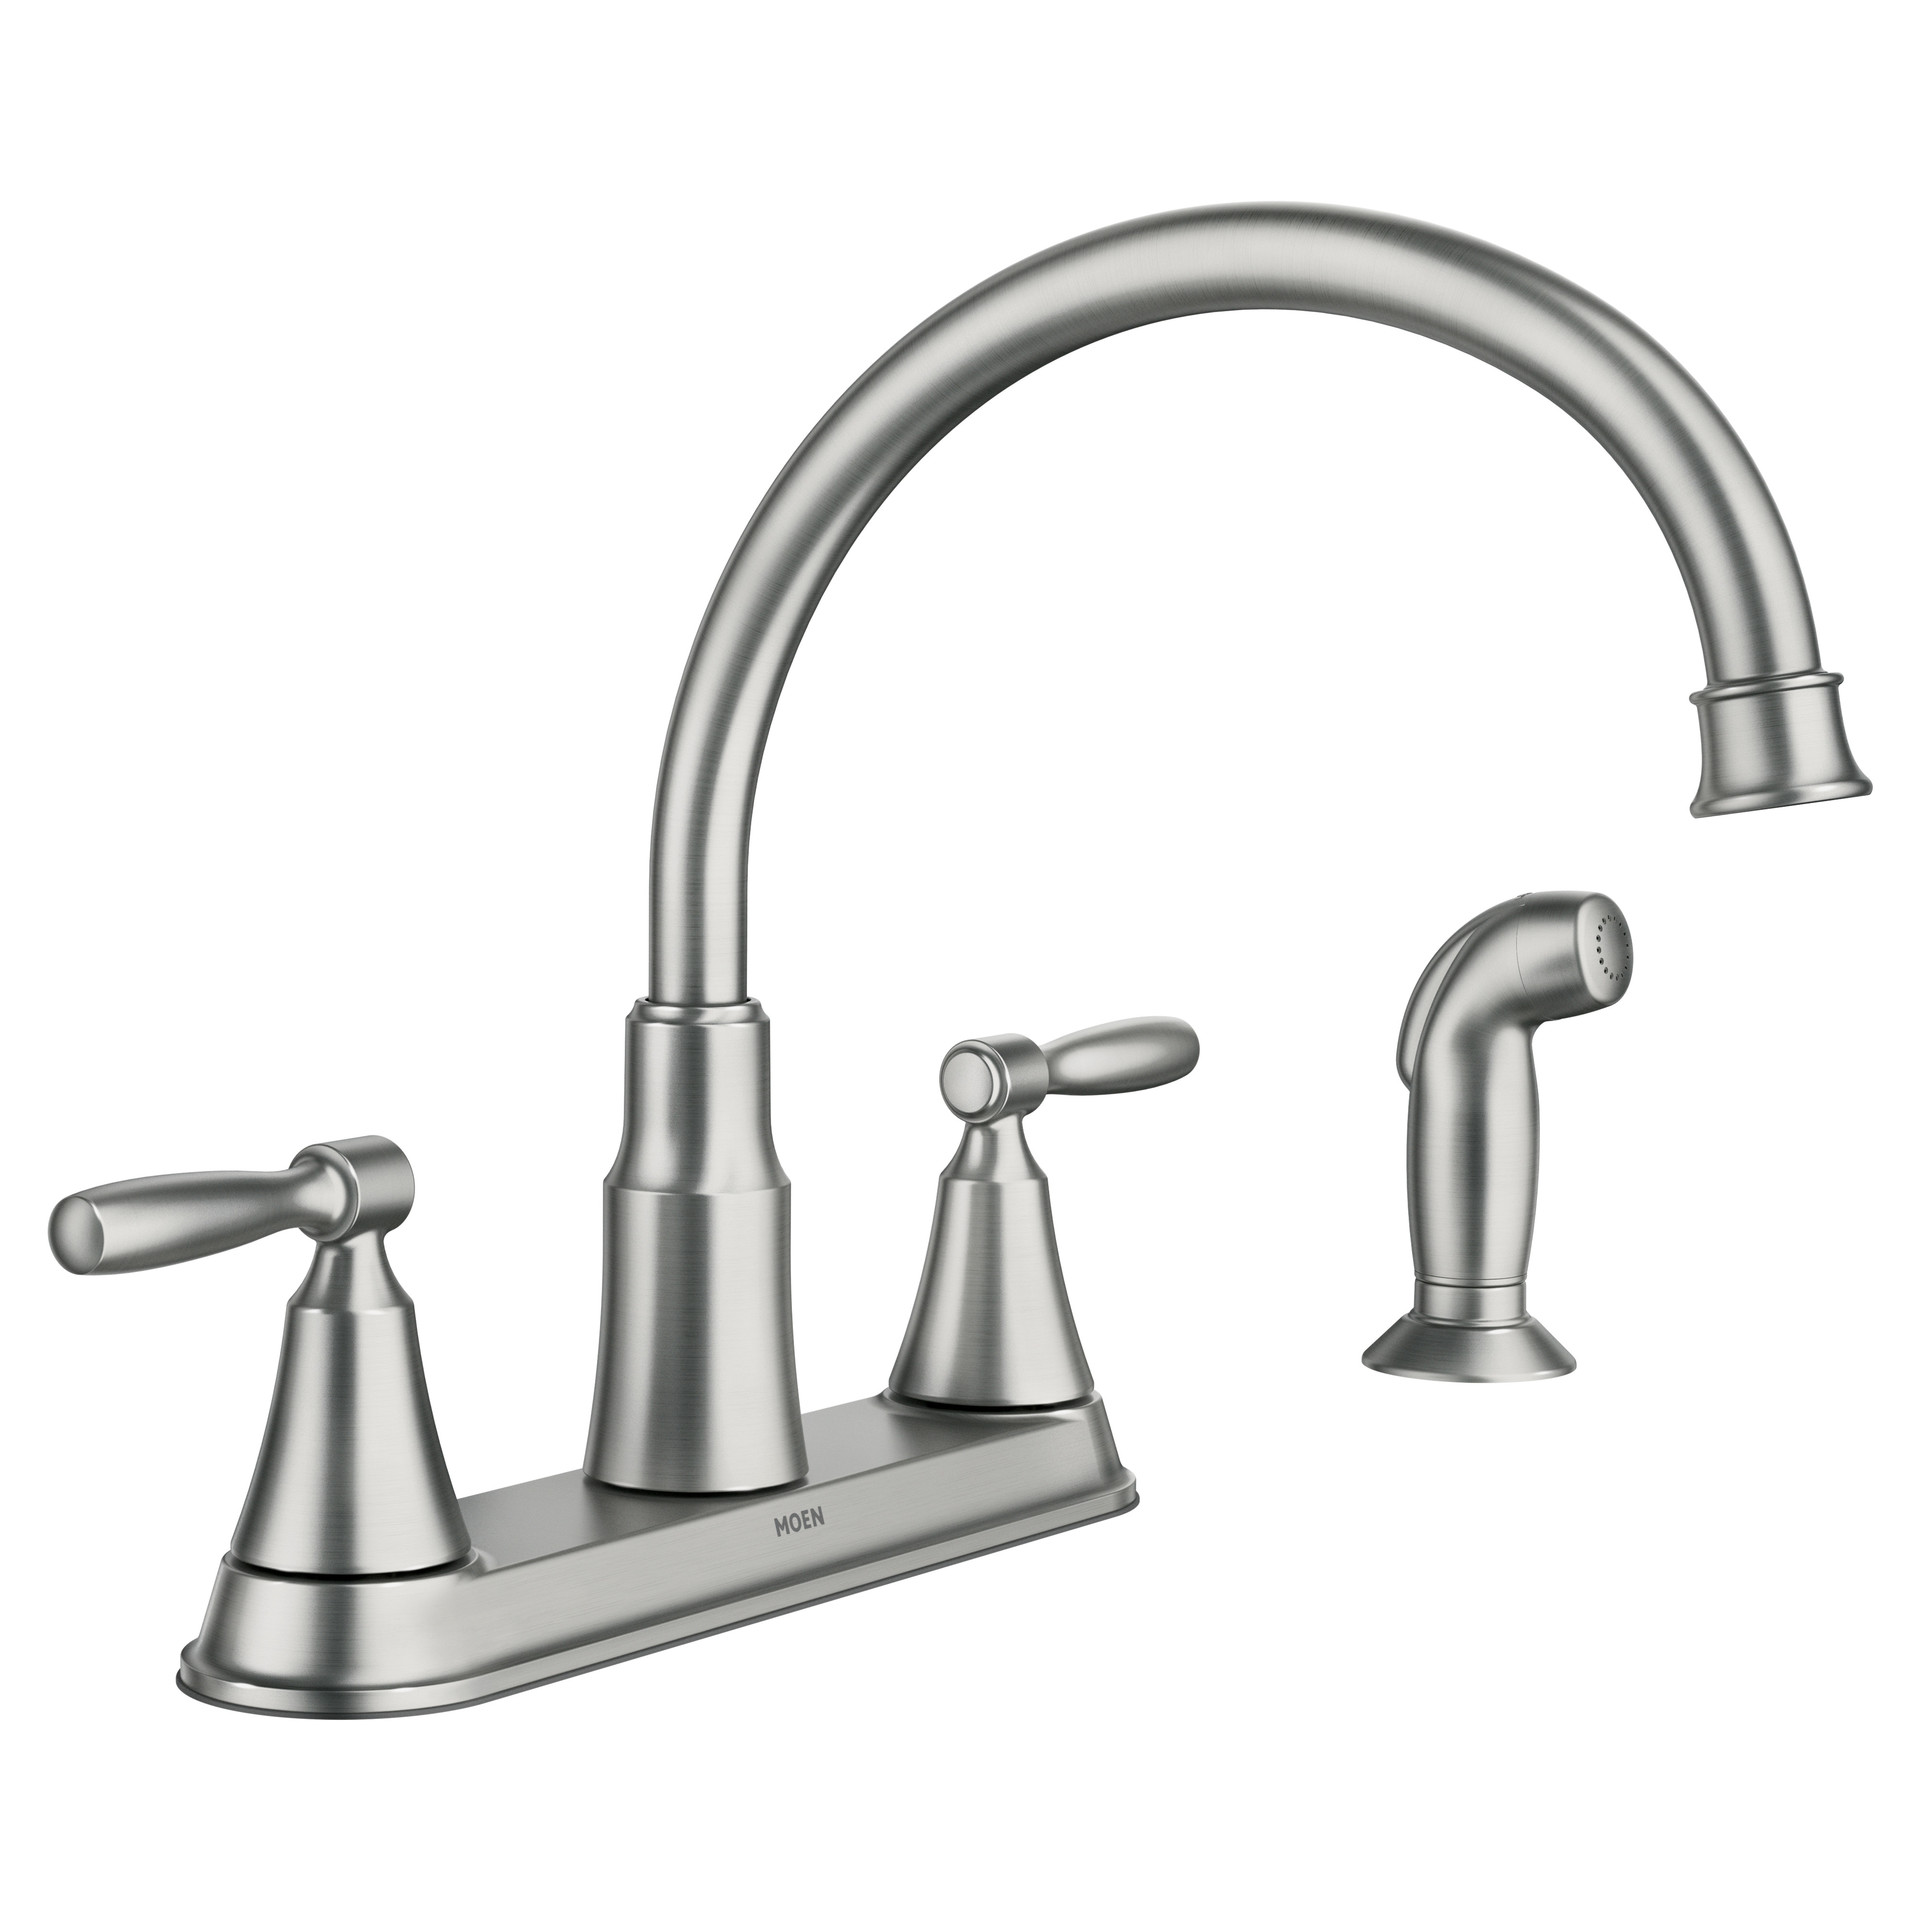 Moen Hutchinson Spot Resist Stainless 2 Handle Deck Mount High Arc Handle Kitchen Faucet Deck Plate Included In The Kitchen Faucets Department At Lowes Com